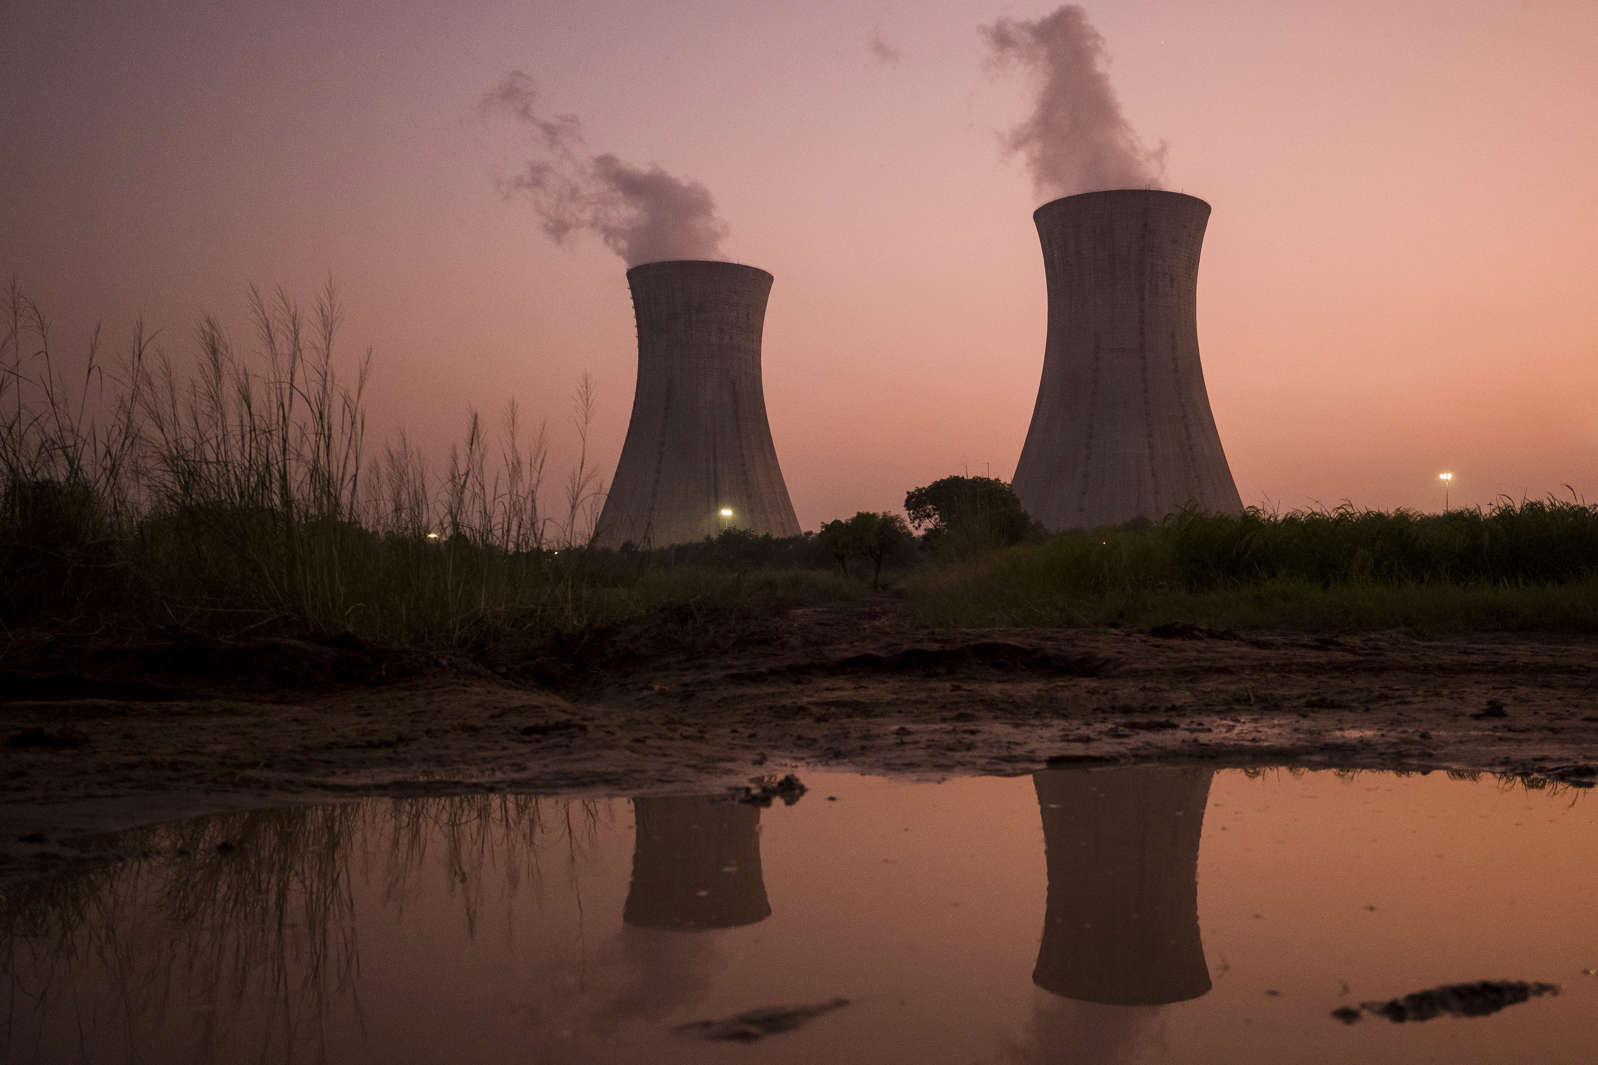 An energy crisis is gripping the world, with potentially grave consequences thumbnail